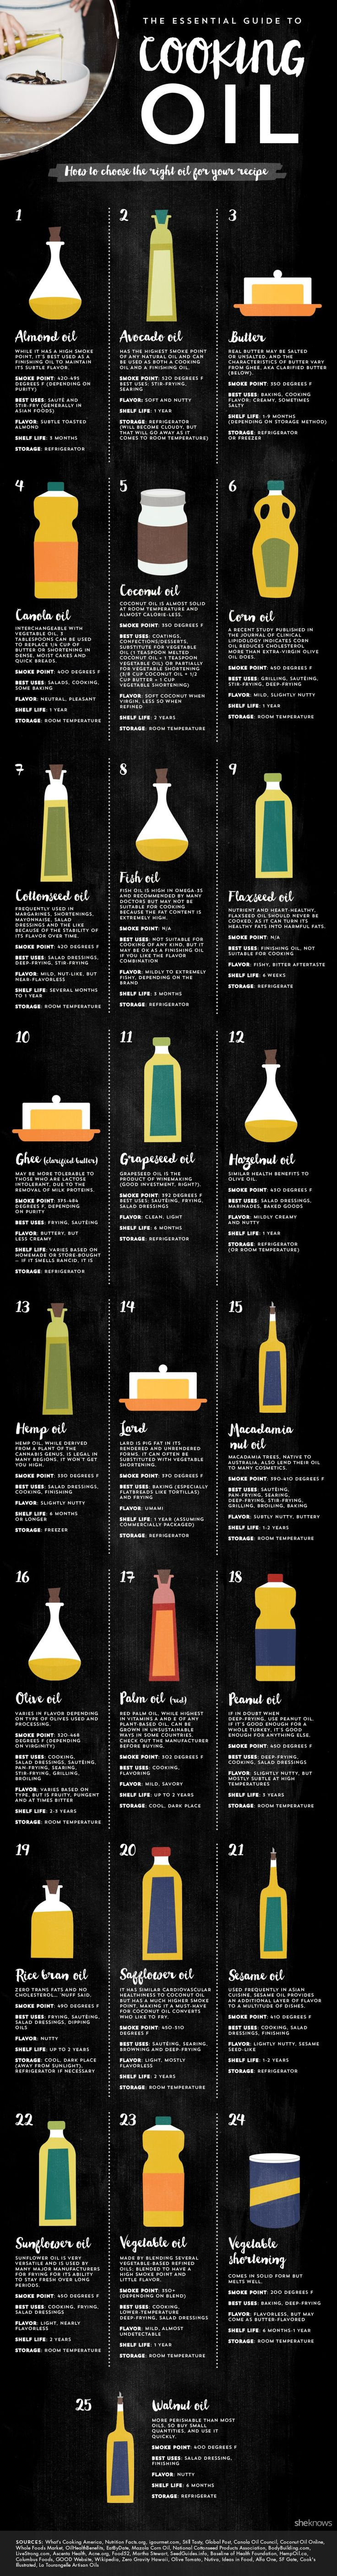 Everything you need to know about cooking oil